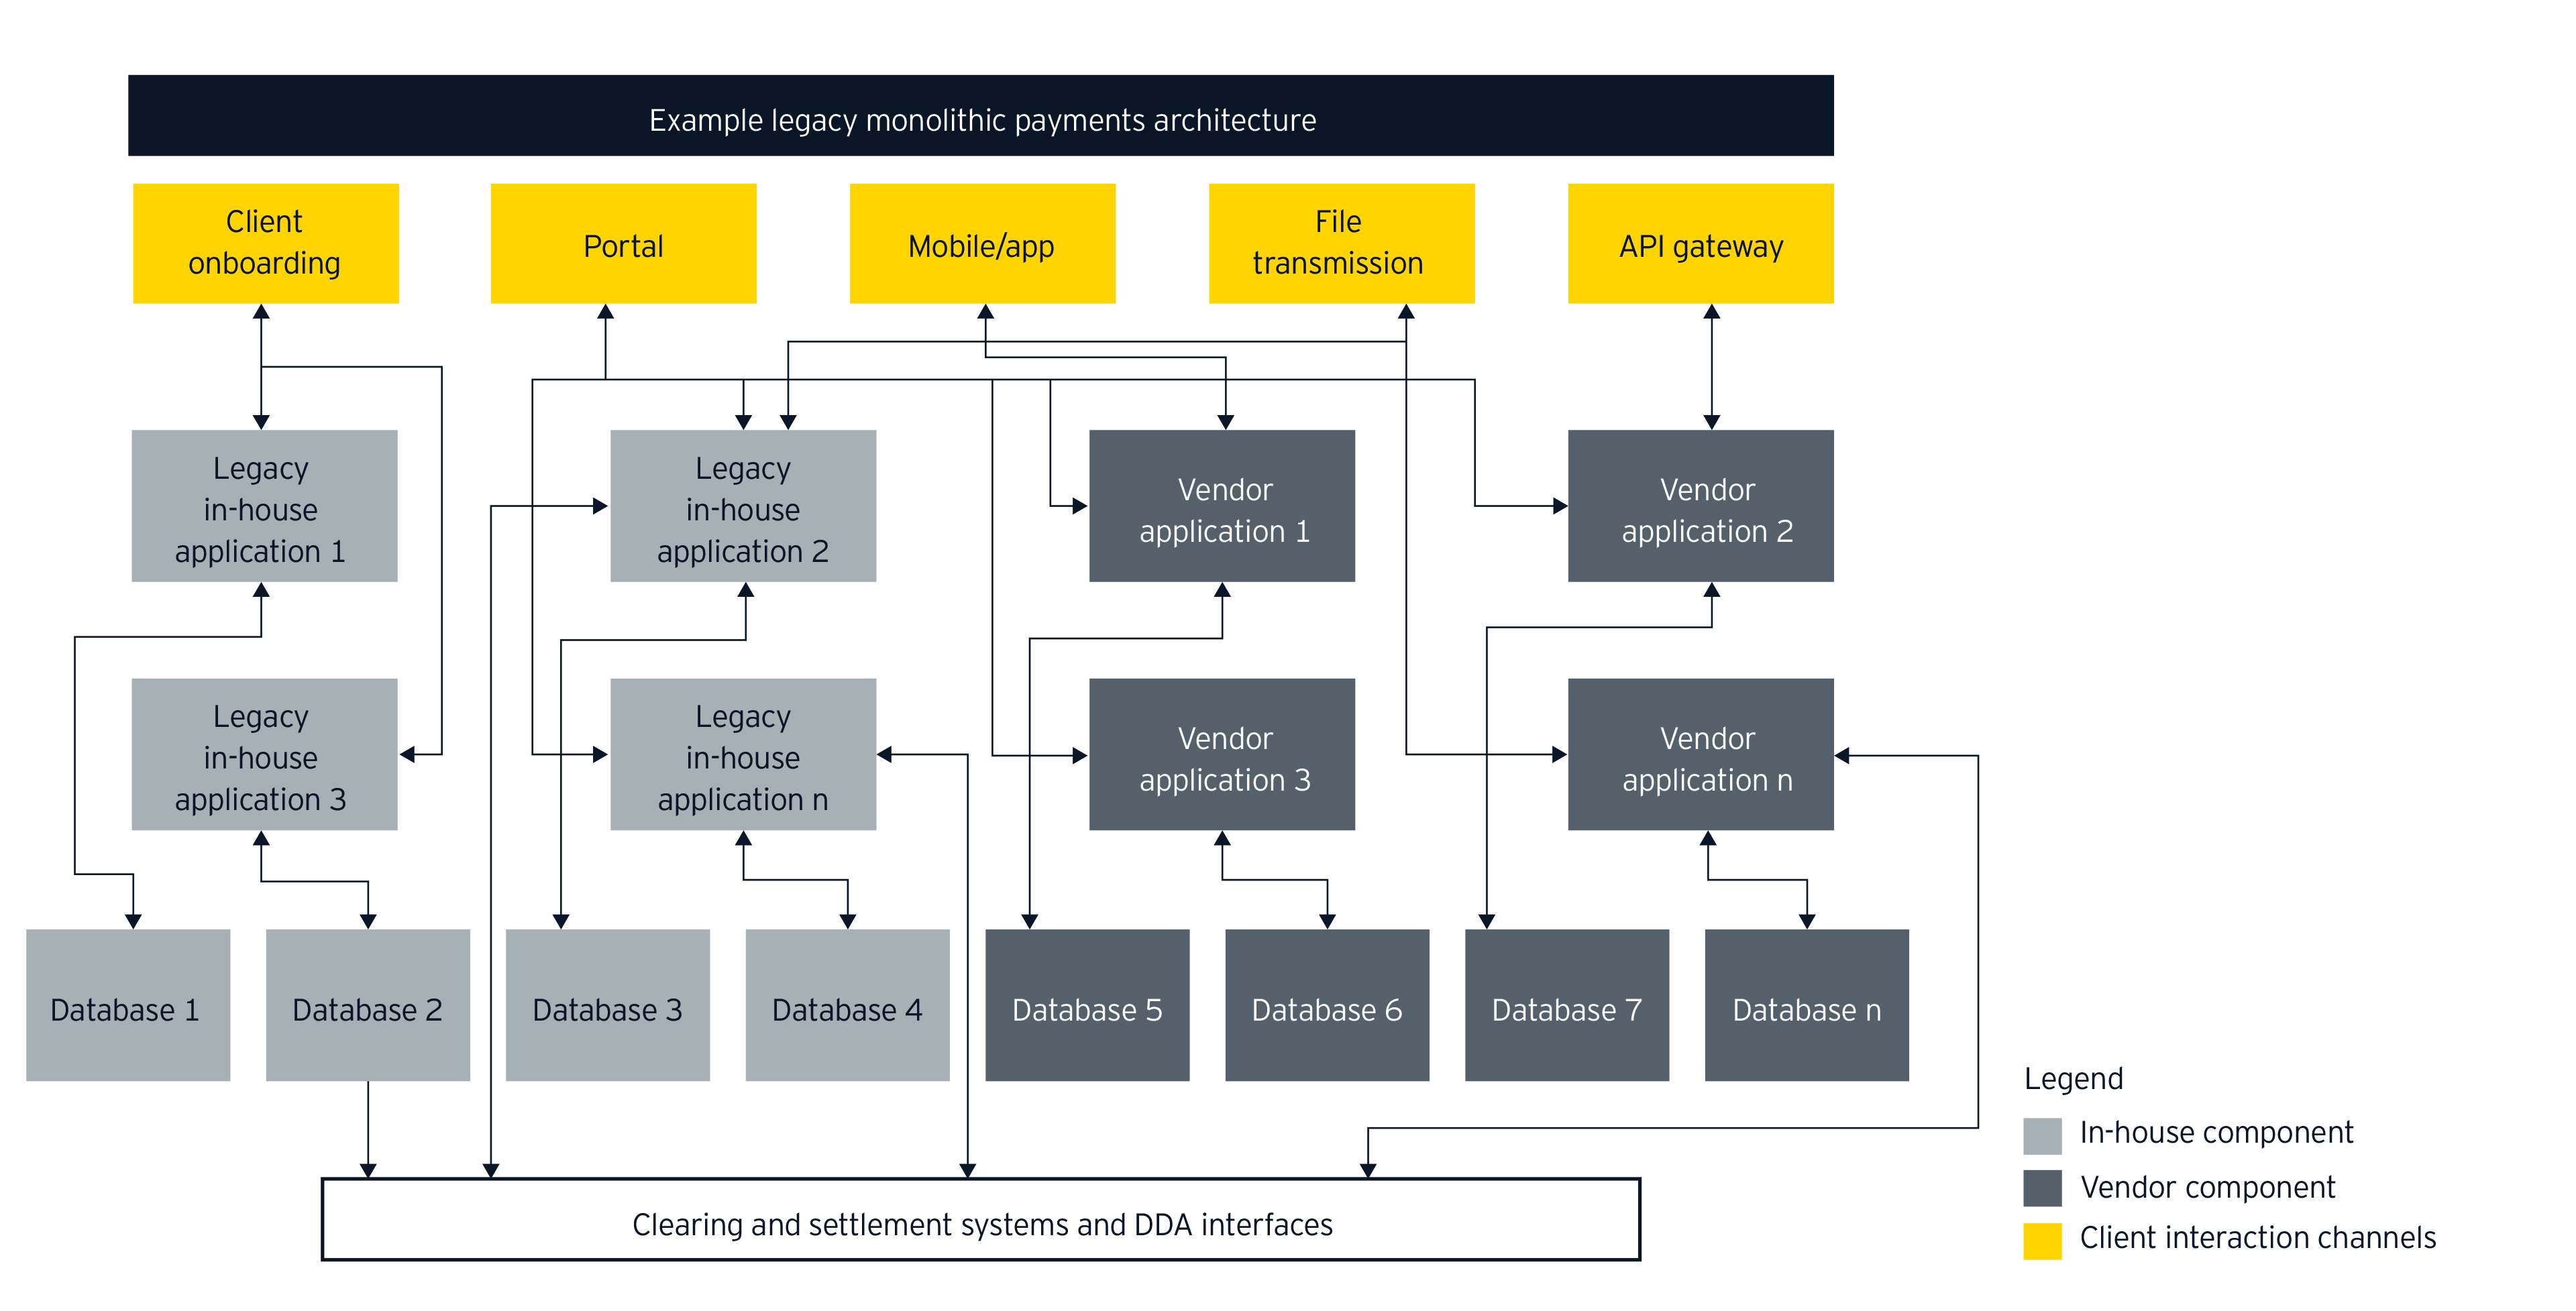 Legacy monotheistic payments architecture